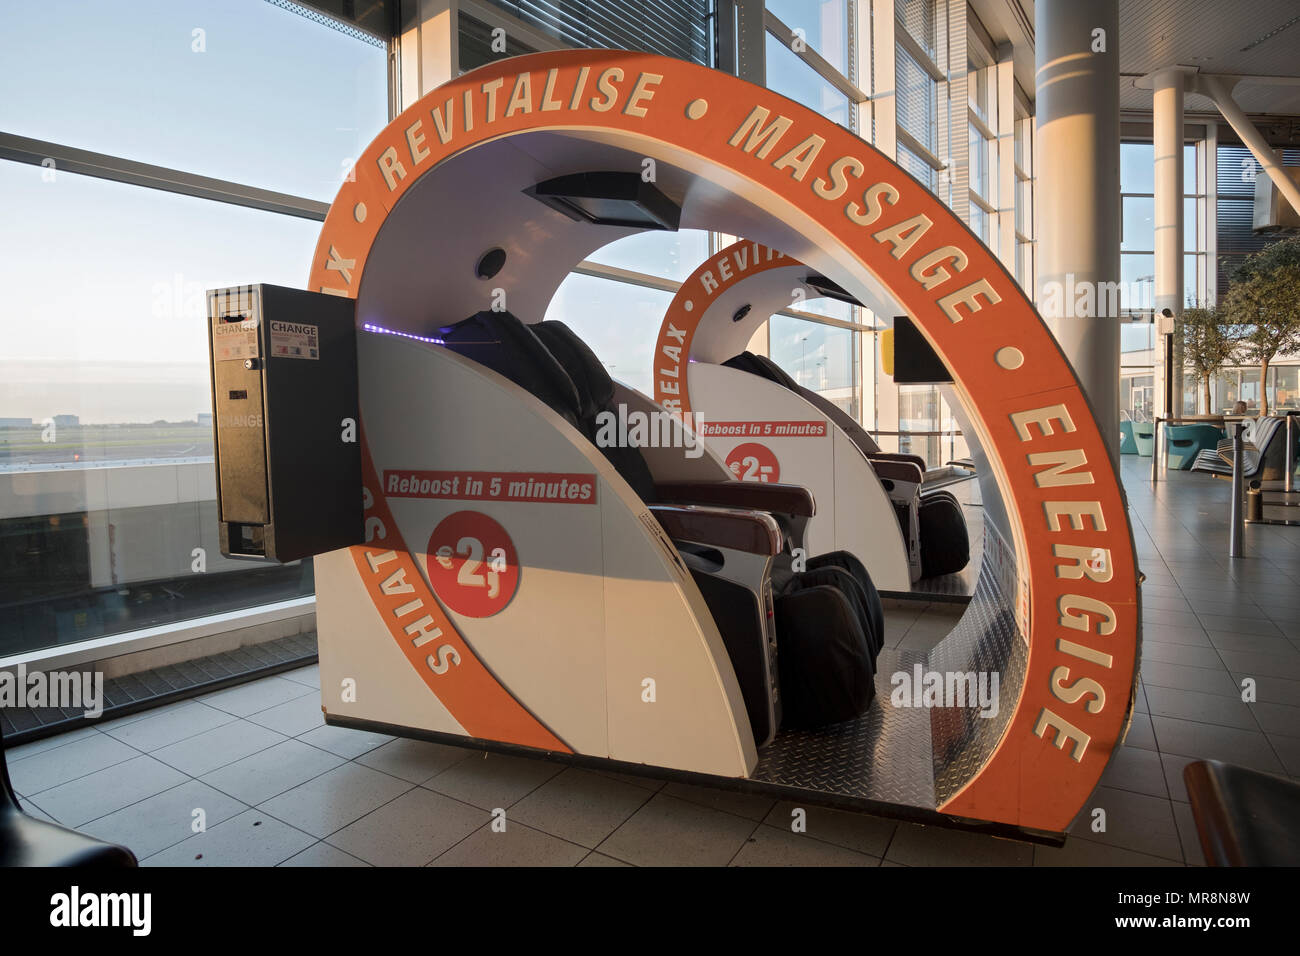 A machine at Airport Schiphol outside of Amsterdam, Netherlands  that offers a 5 minute revitalizing massage for two Euros. - Stock Image